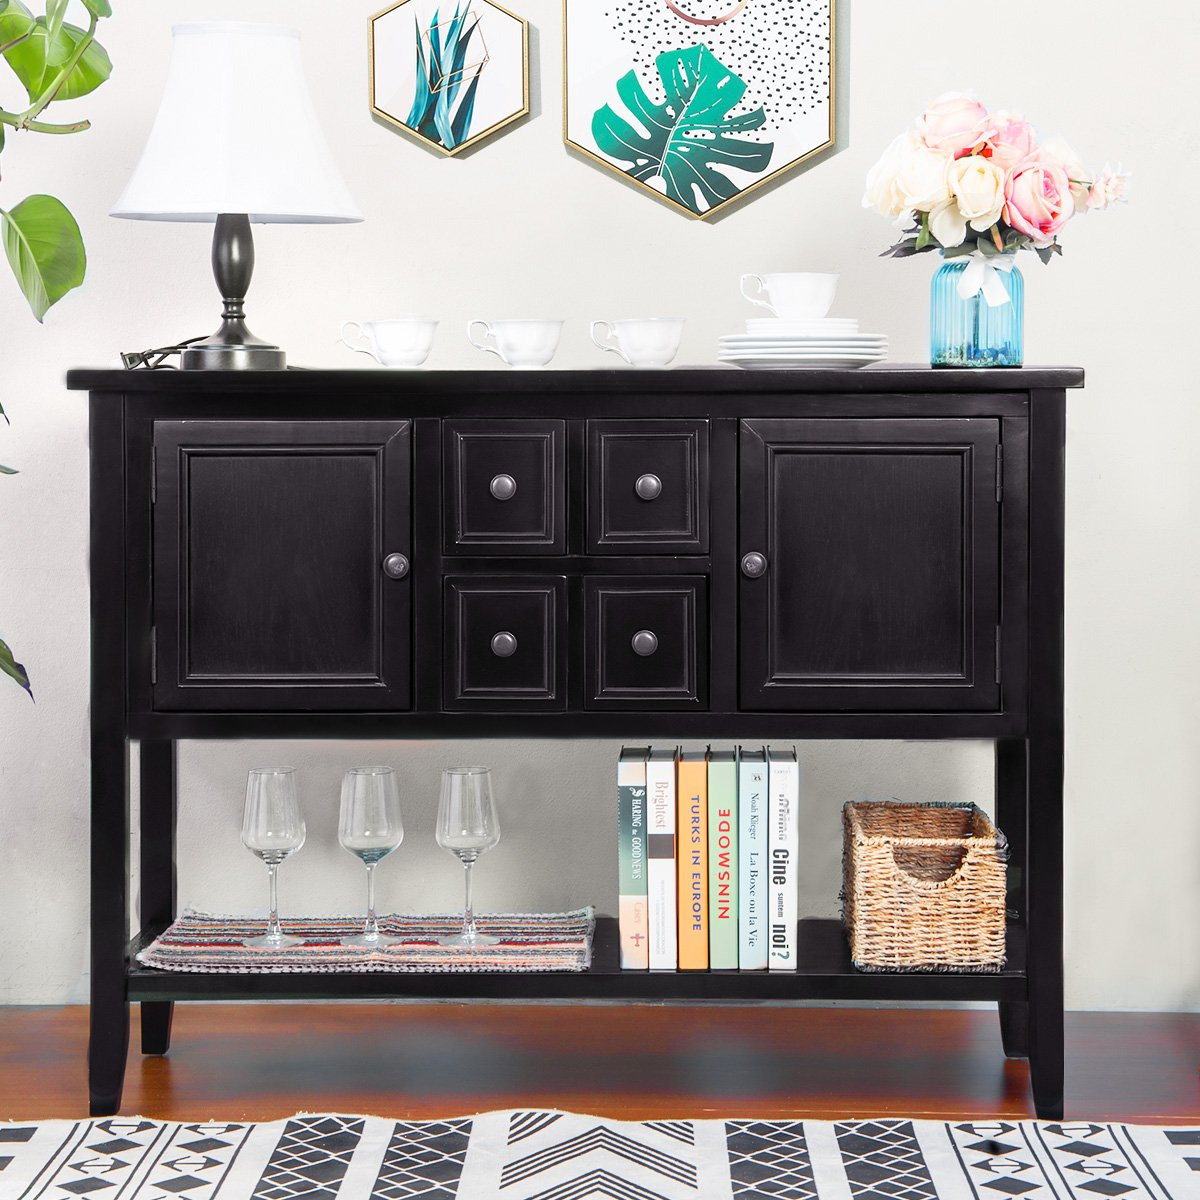 Console Table Sideboard Buffet Storage Cabinet Home Furniture for Entryway Hallway with Bottle Shelf Espresso